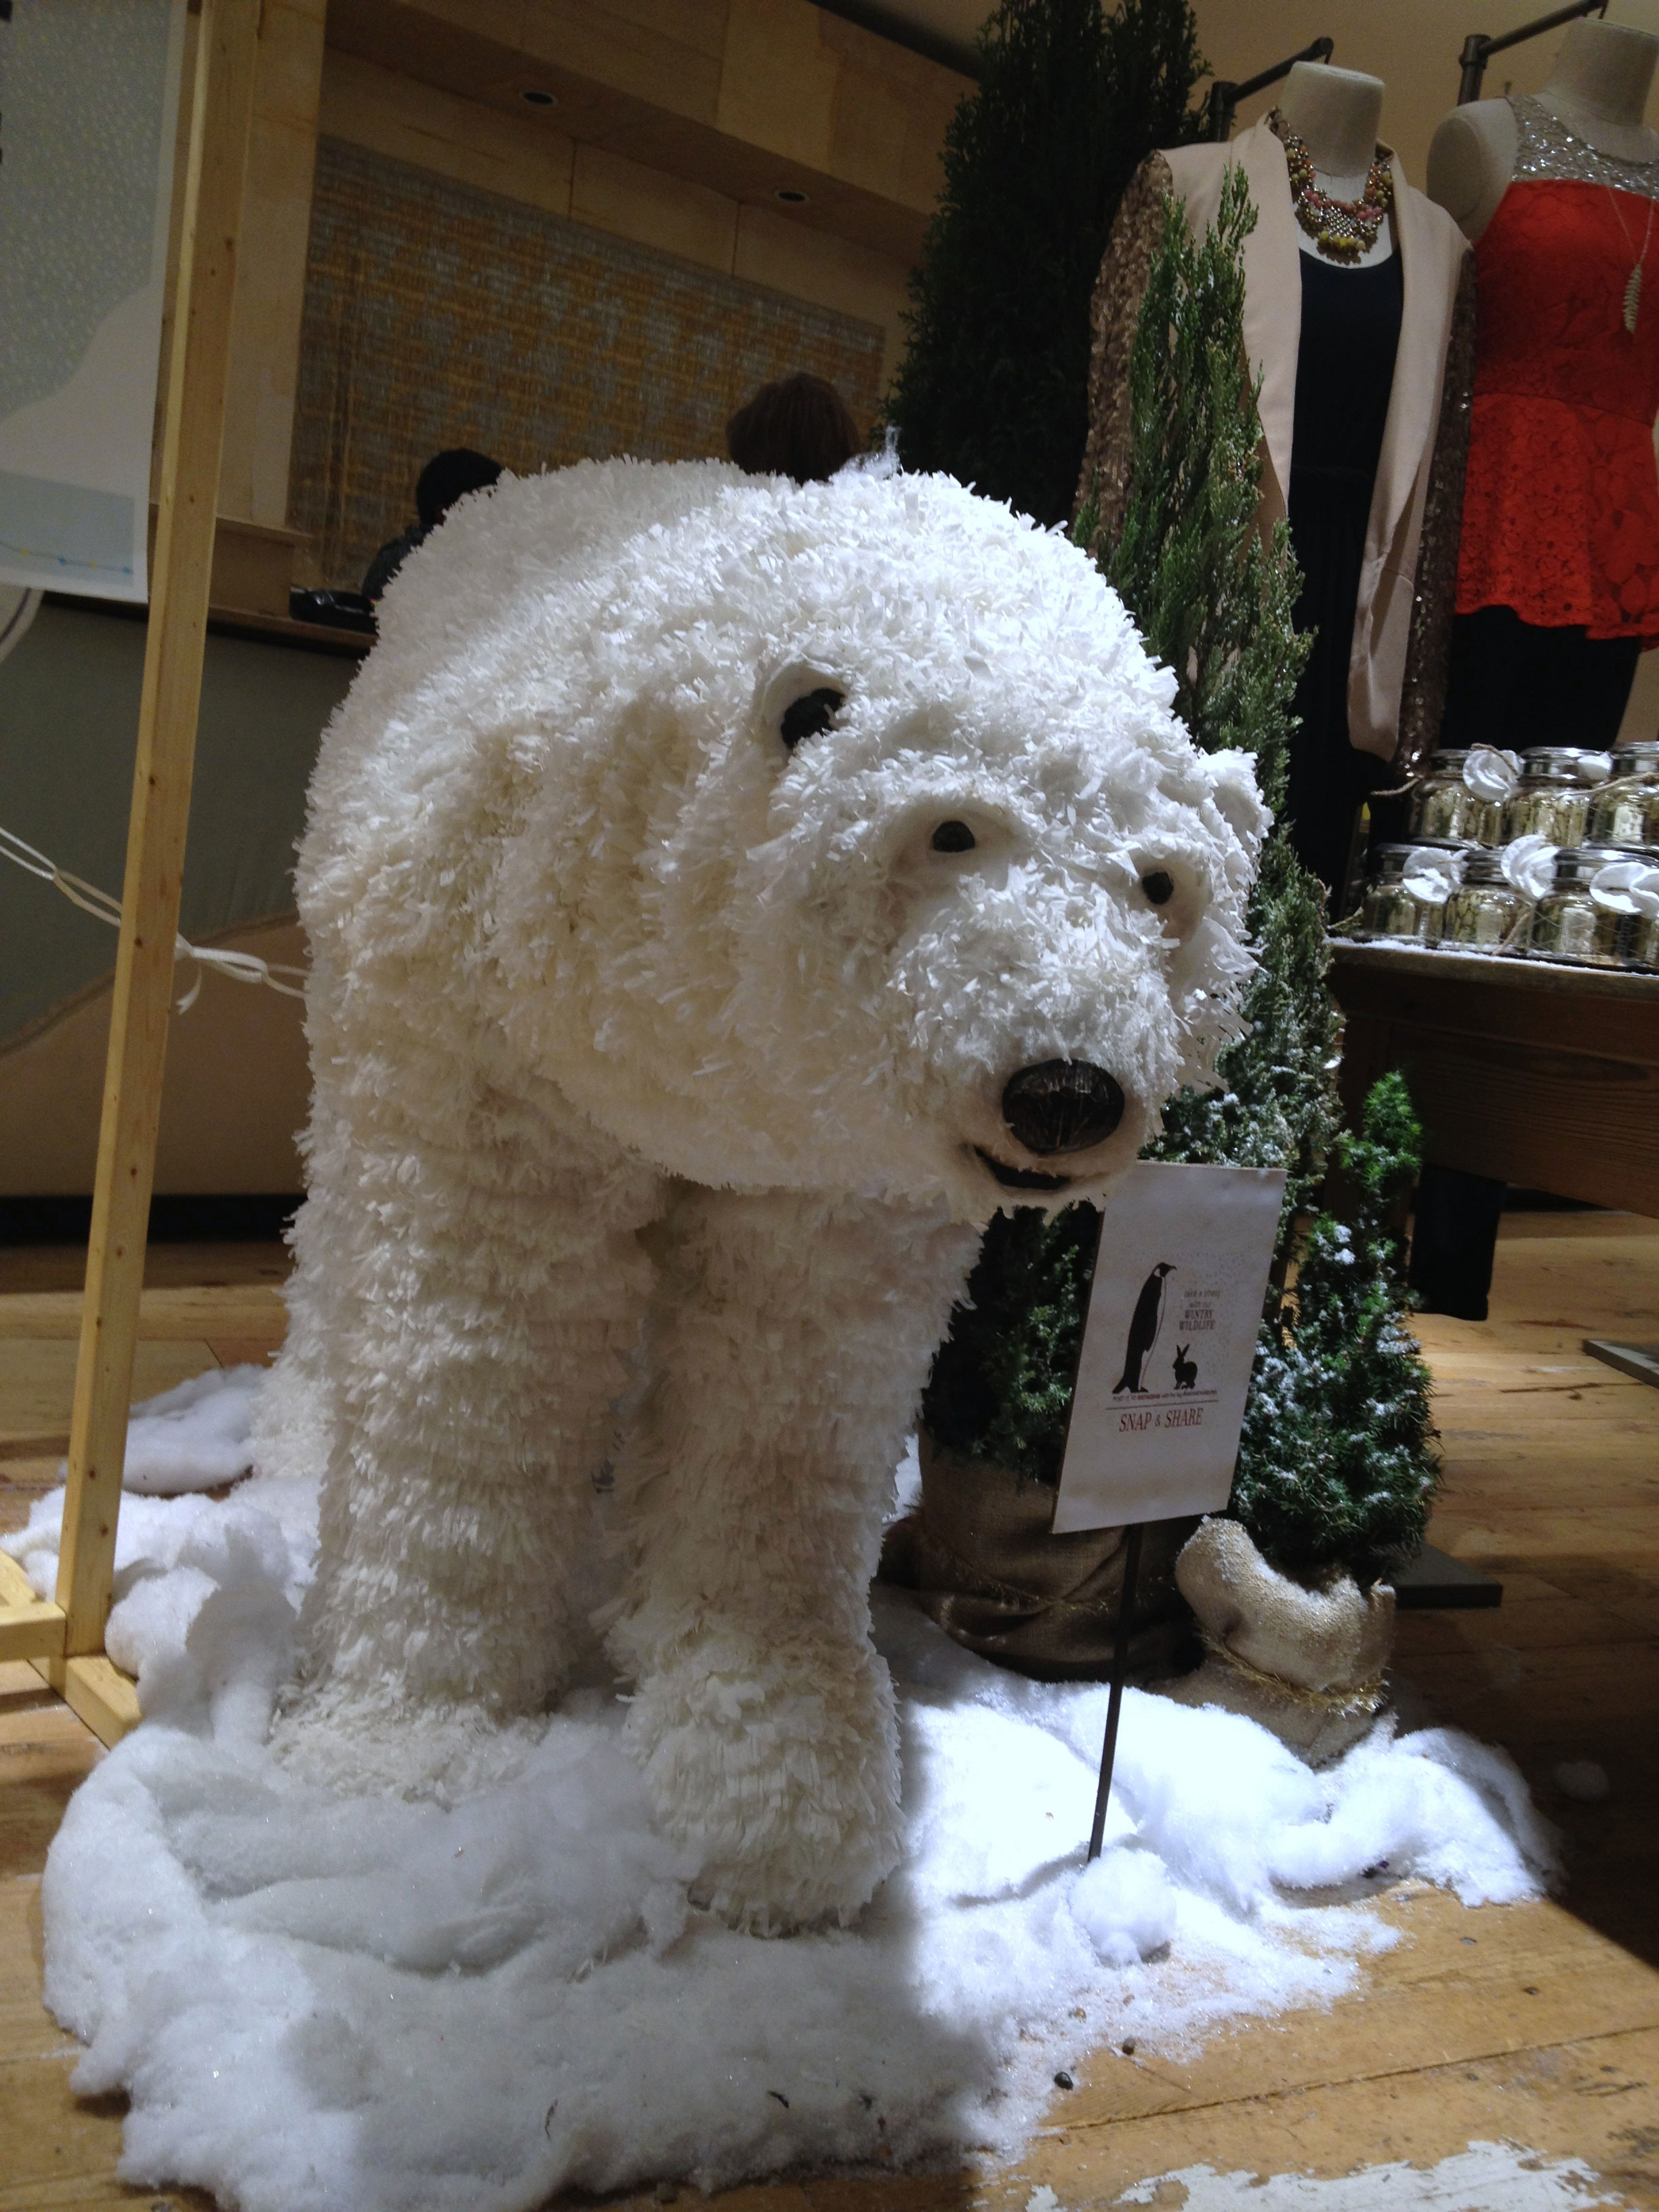 A little bit of Alaska at the  Anthropologie  store at  The Summit  in Birmingham, Alabama.